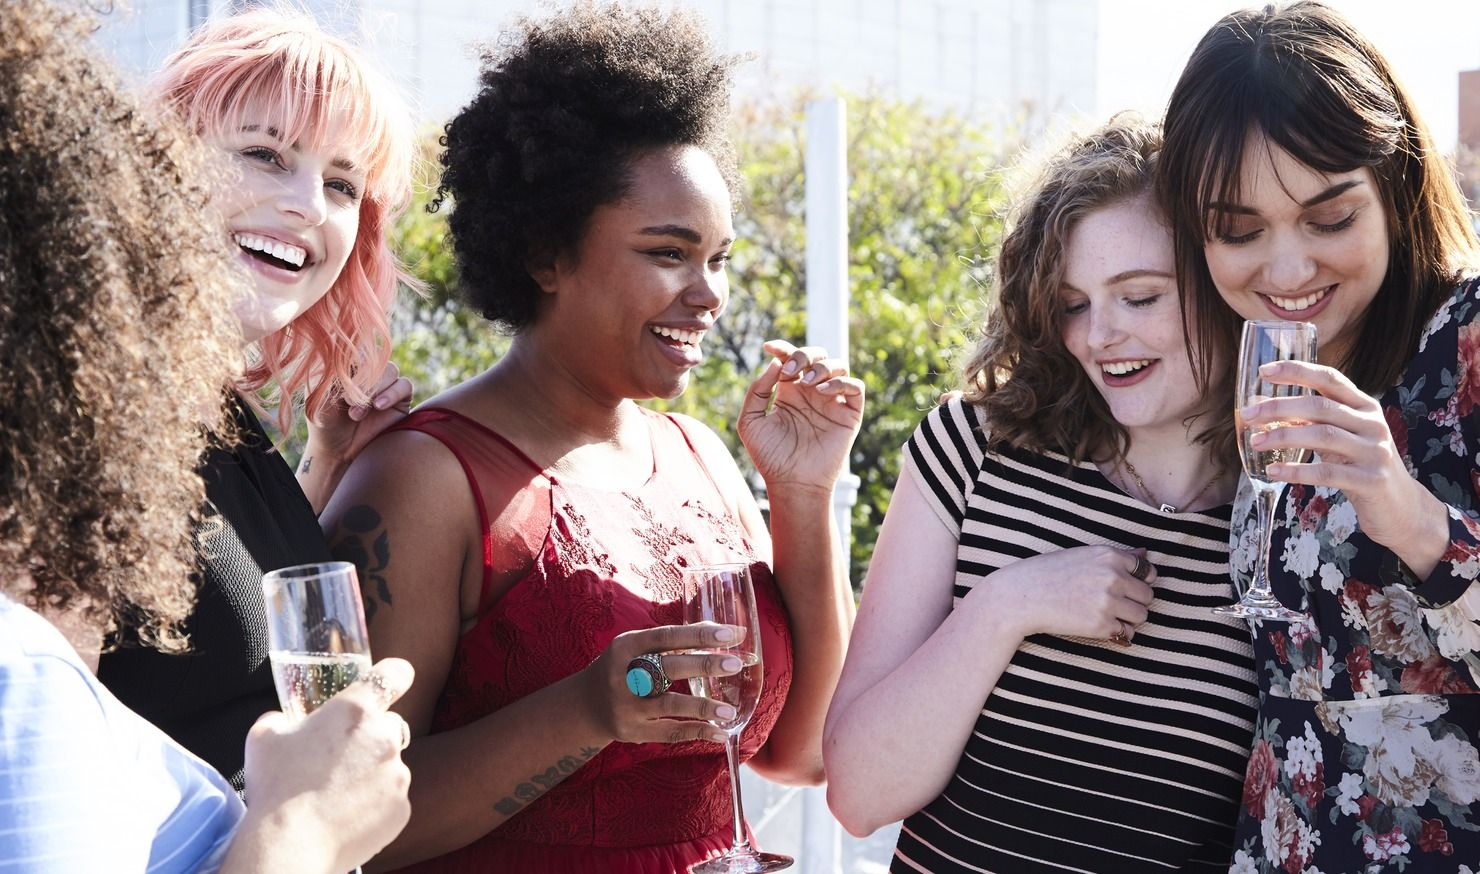 These Unexpected Ways To Make Friends As An Adult